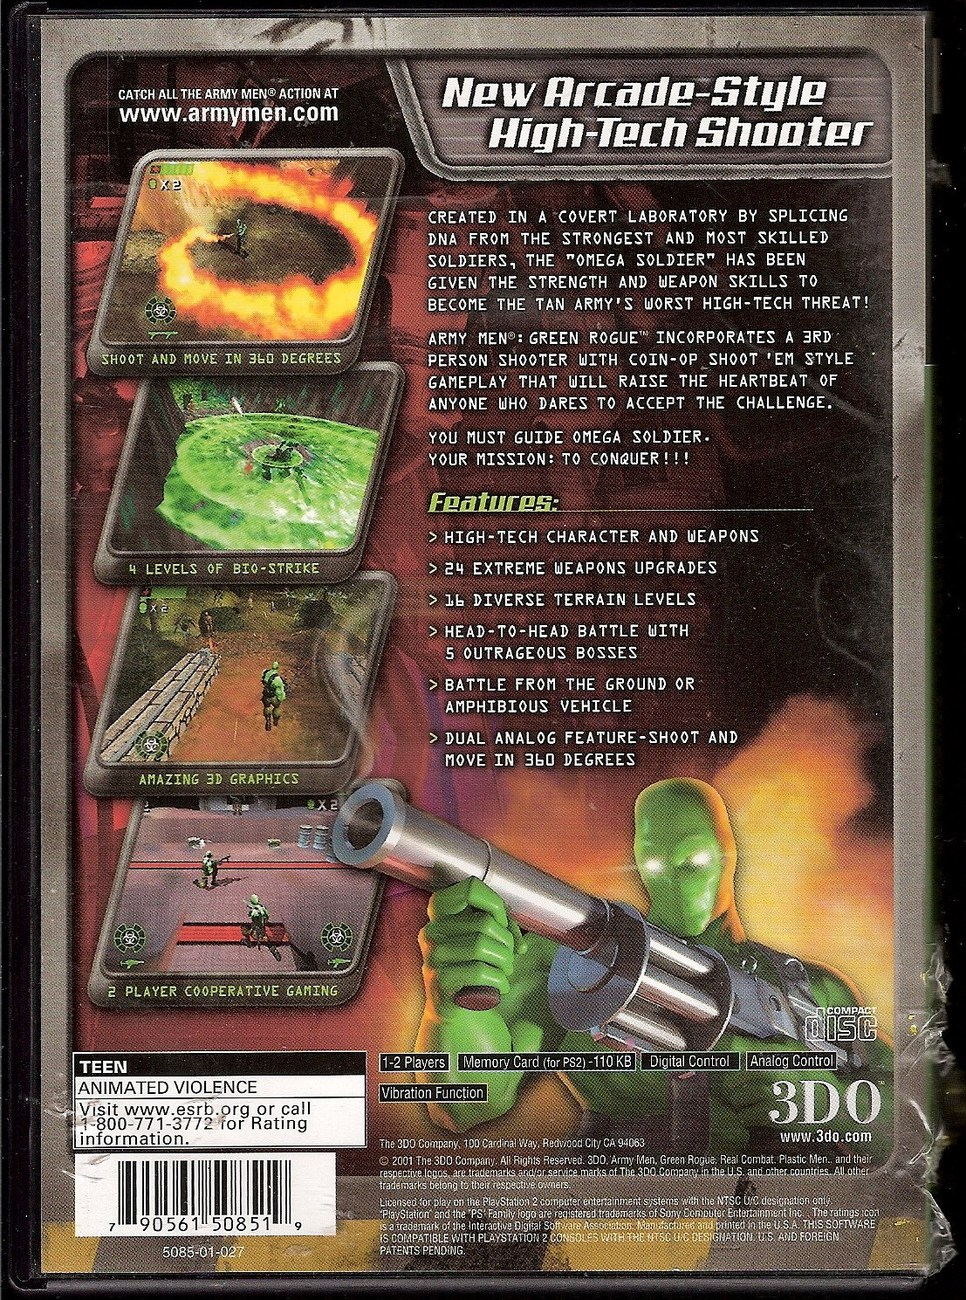 Image 1 of Army Men: Green Rogue PlayStation 2 video game 2001 by 3DO